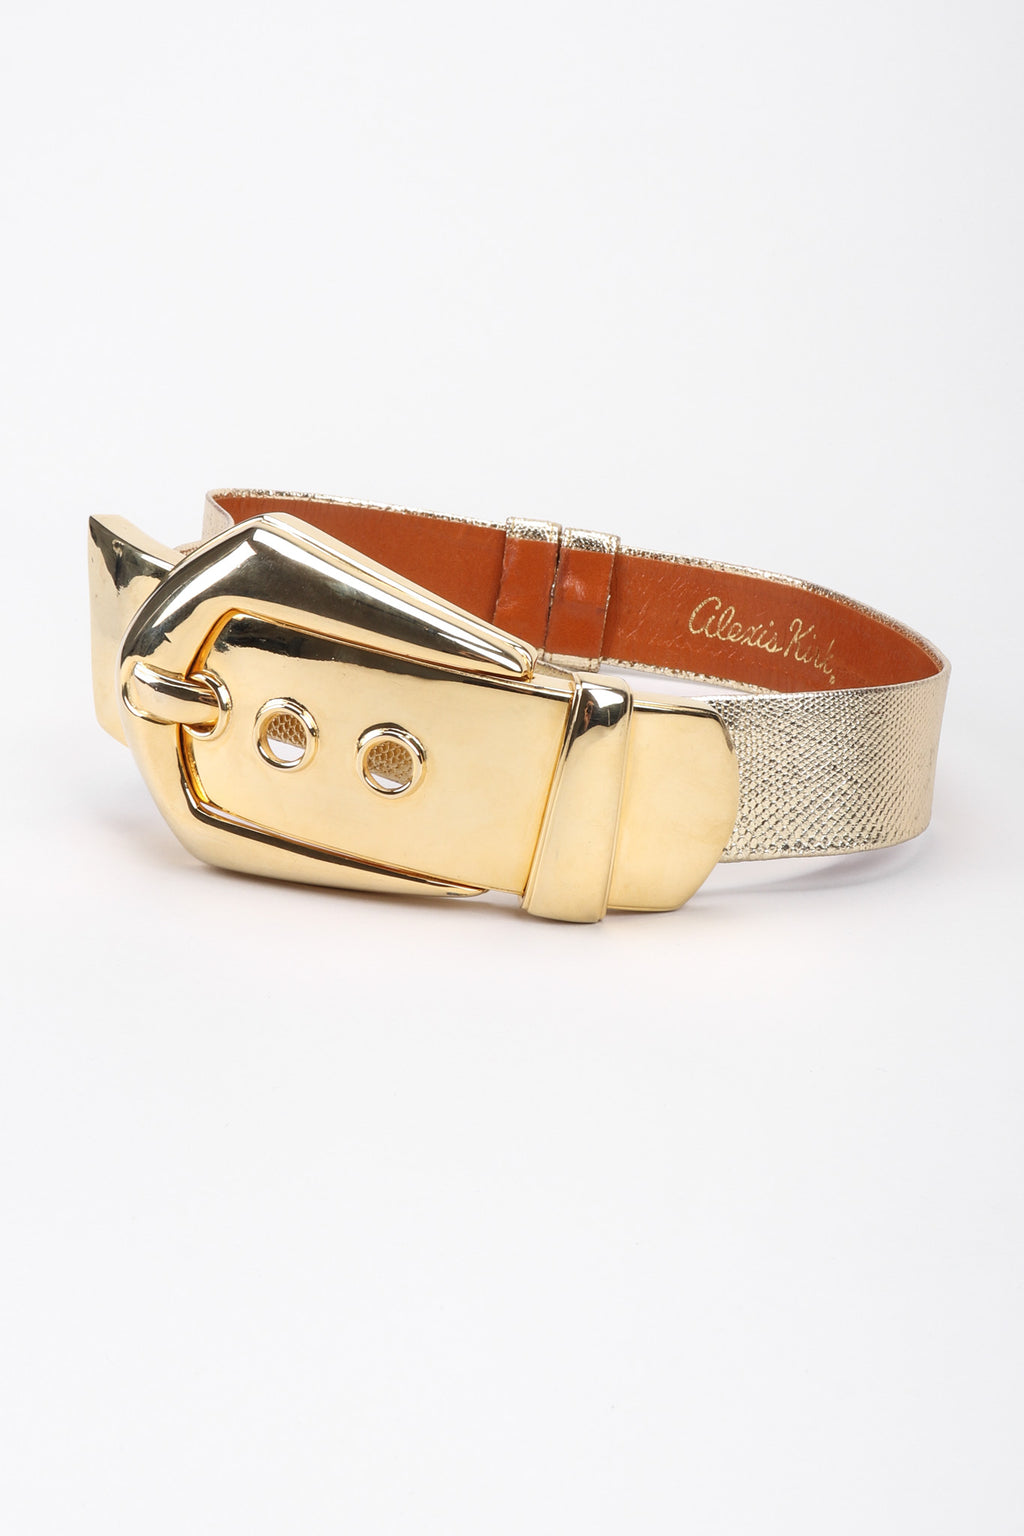 Recess Los Angeles Vintage Alexis Kirk Oversized Lamé Gold Metal Buckle Belt